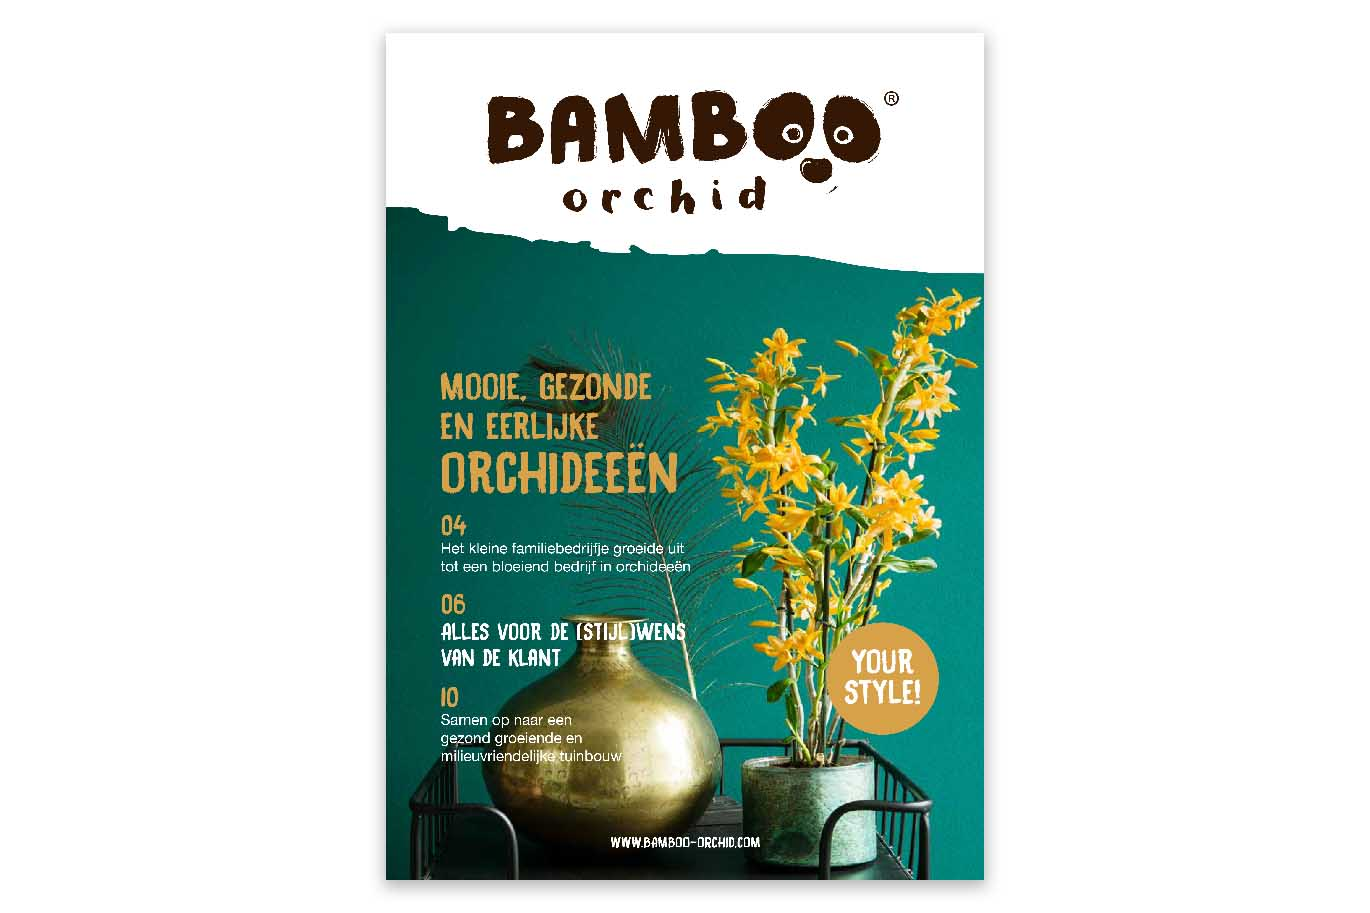 Bamboo Orchid magazine cover